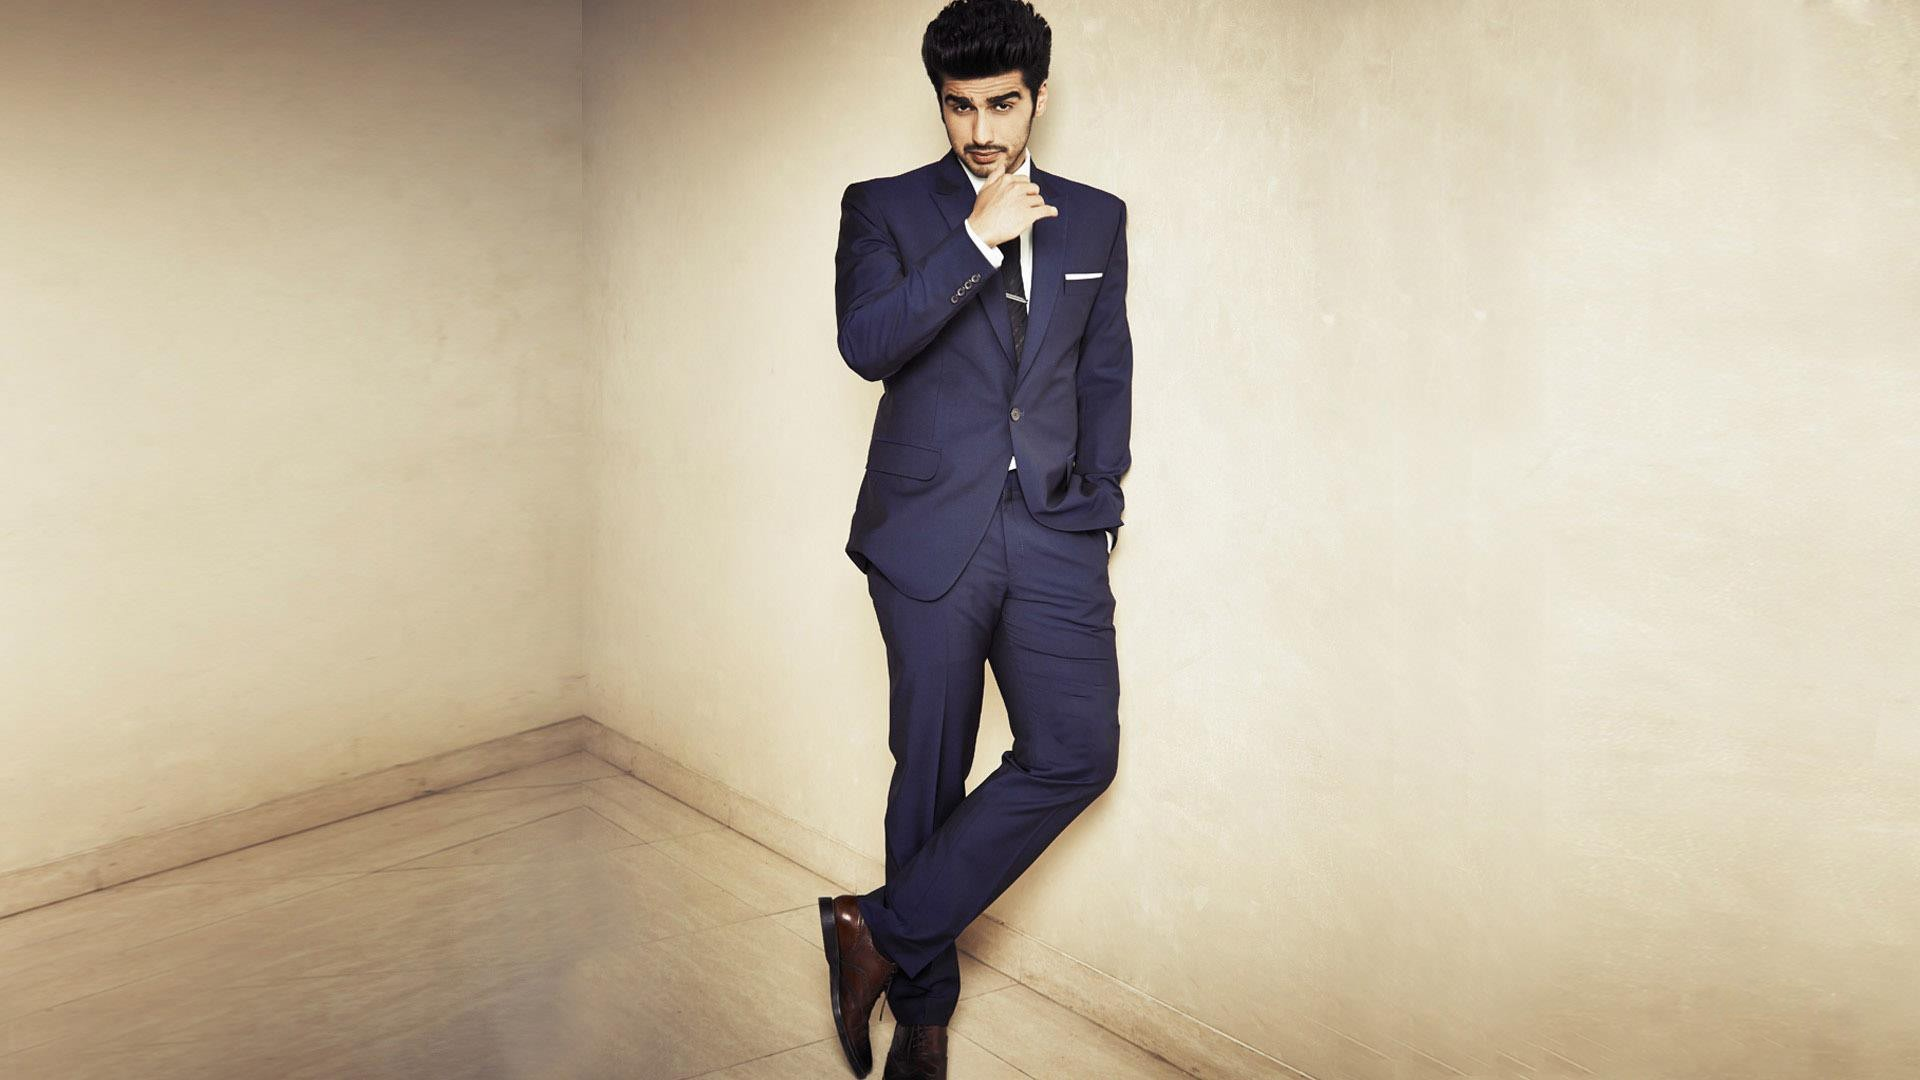 Arjun Kapoor Stylish Photos